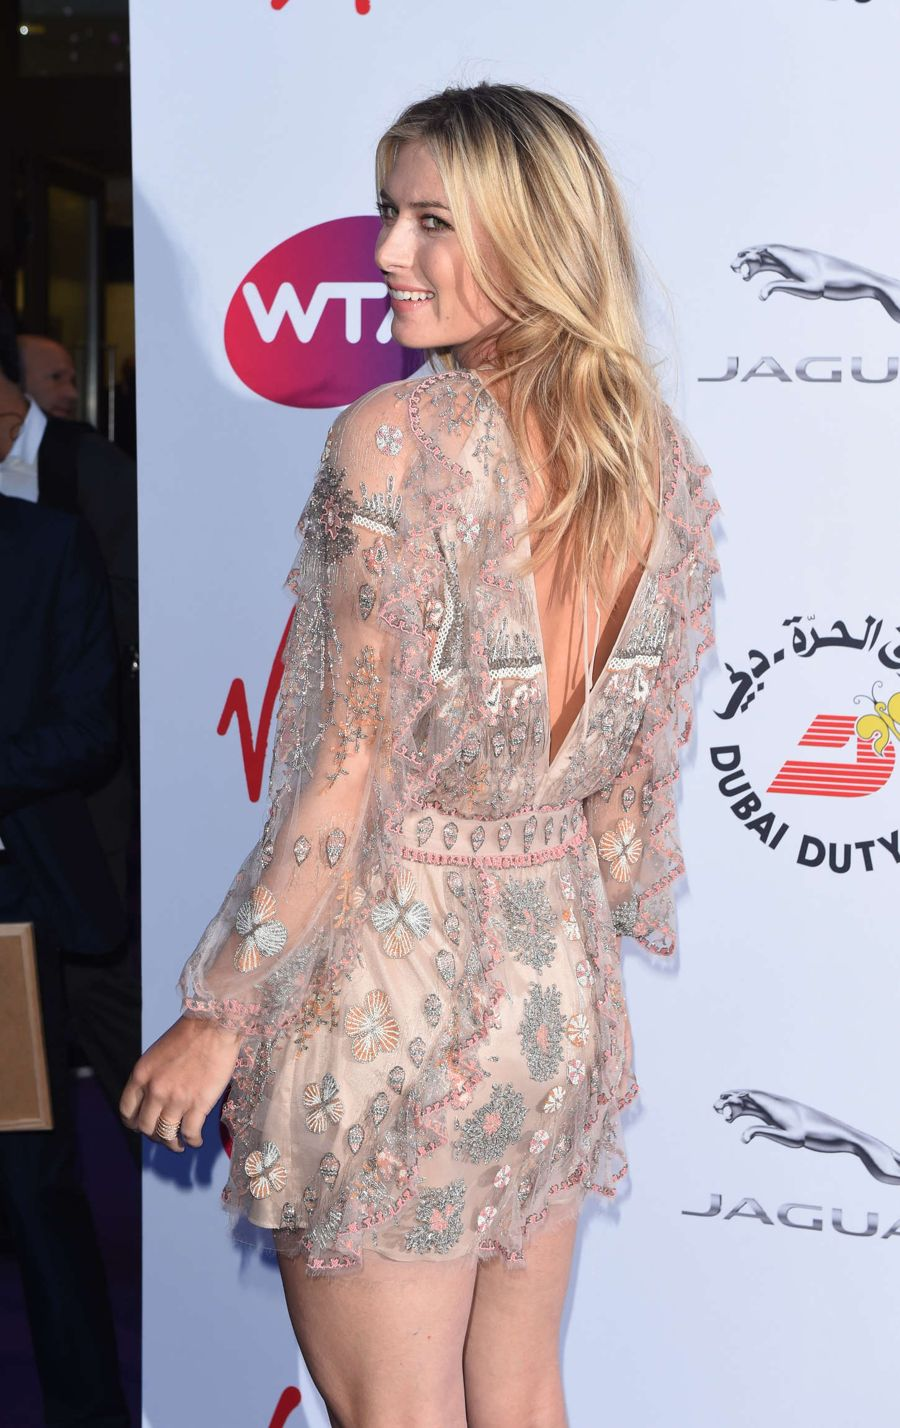 Maria Sharapova - WTA Pre-Wimbledon Party 2015 in London